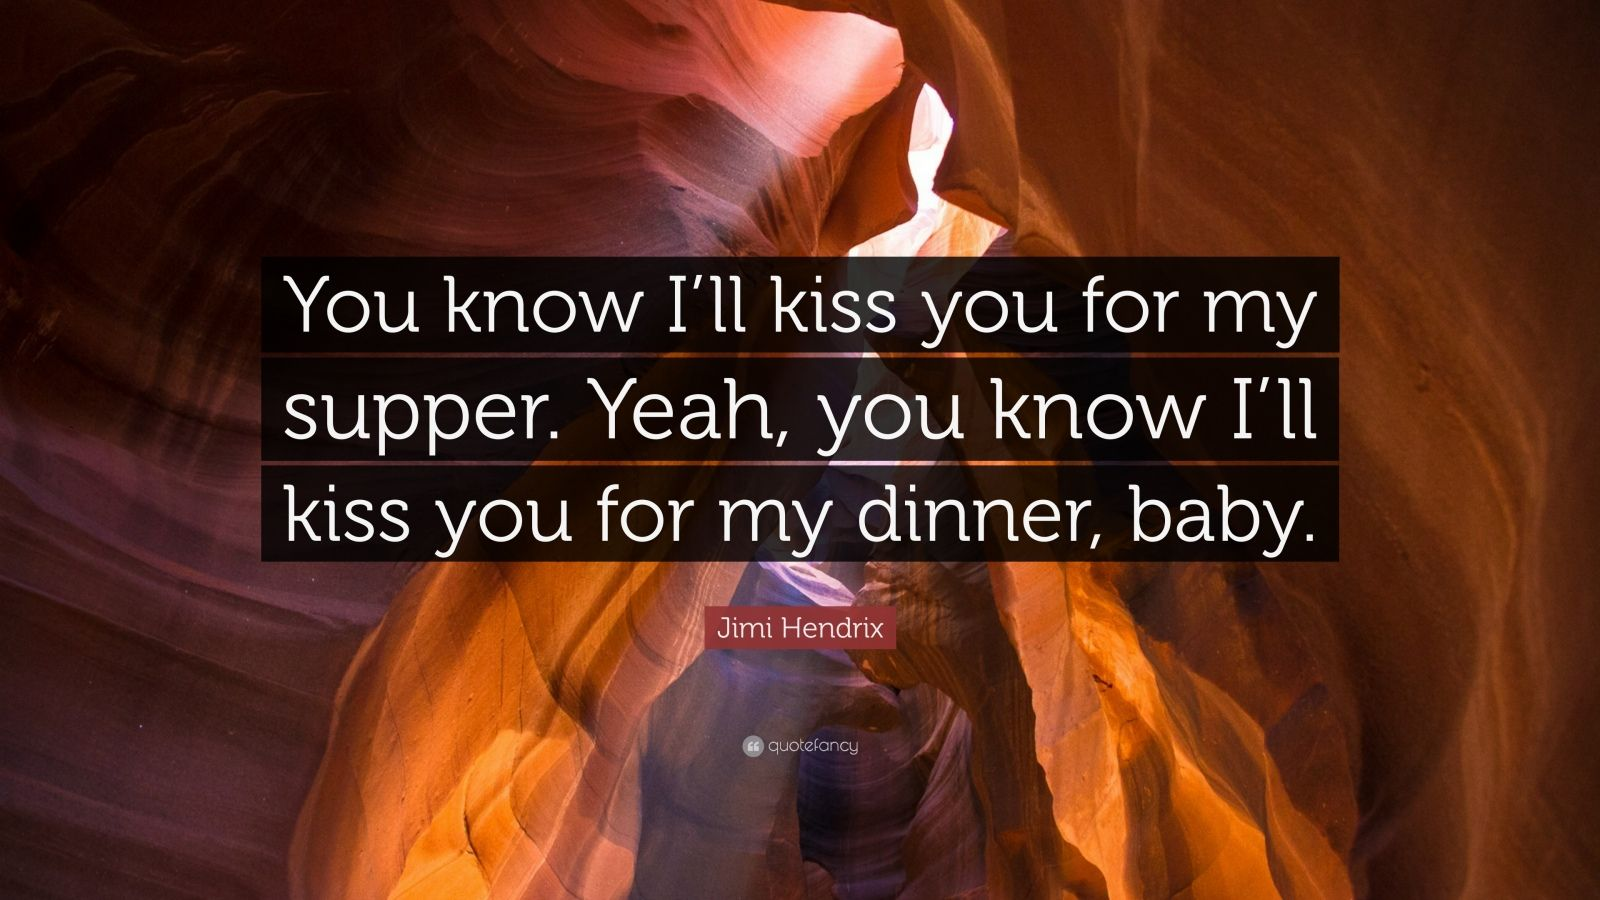 """Jimi Hendrix Quote: """"You know I'll kiss you for my supper. Yeah, you know I'll kiss you for my dinner, baby."""""""